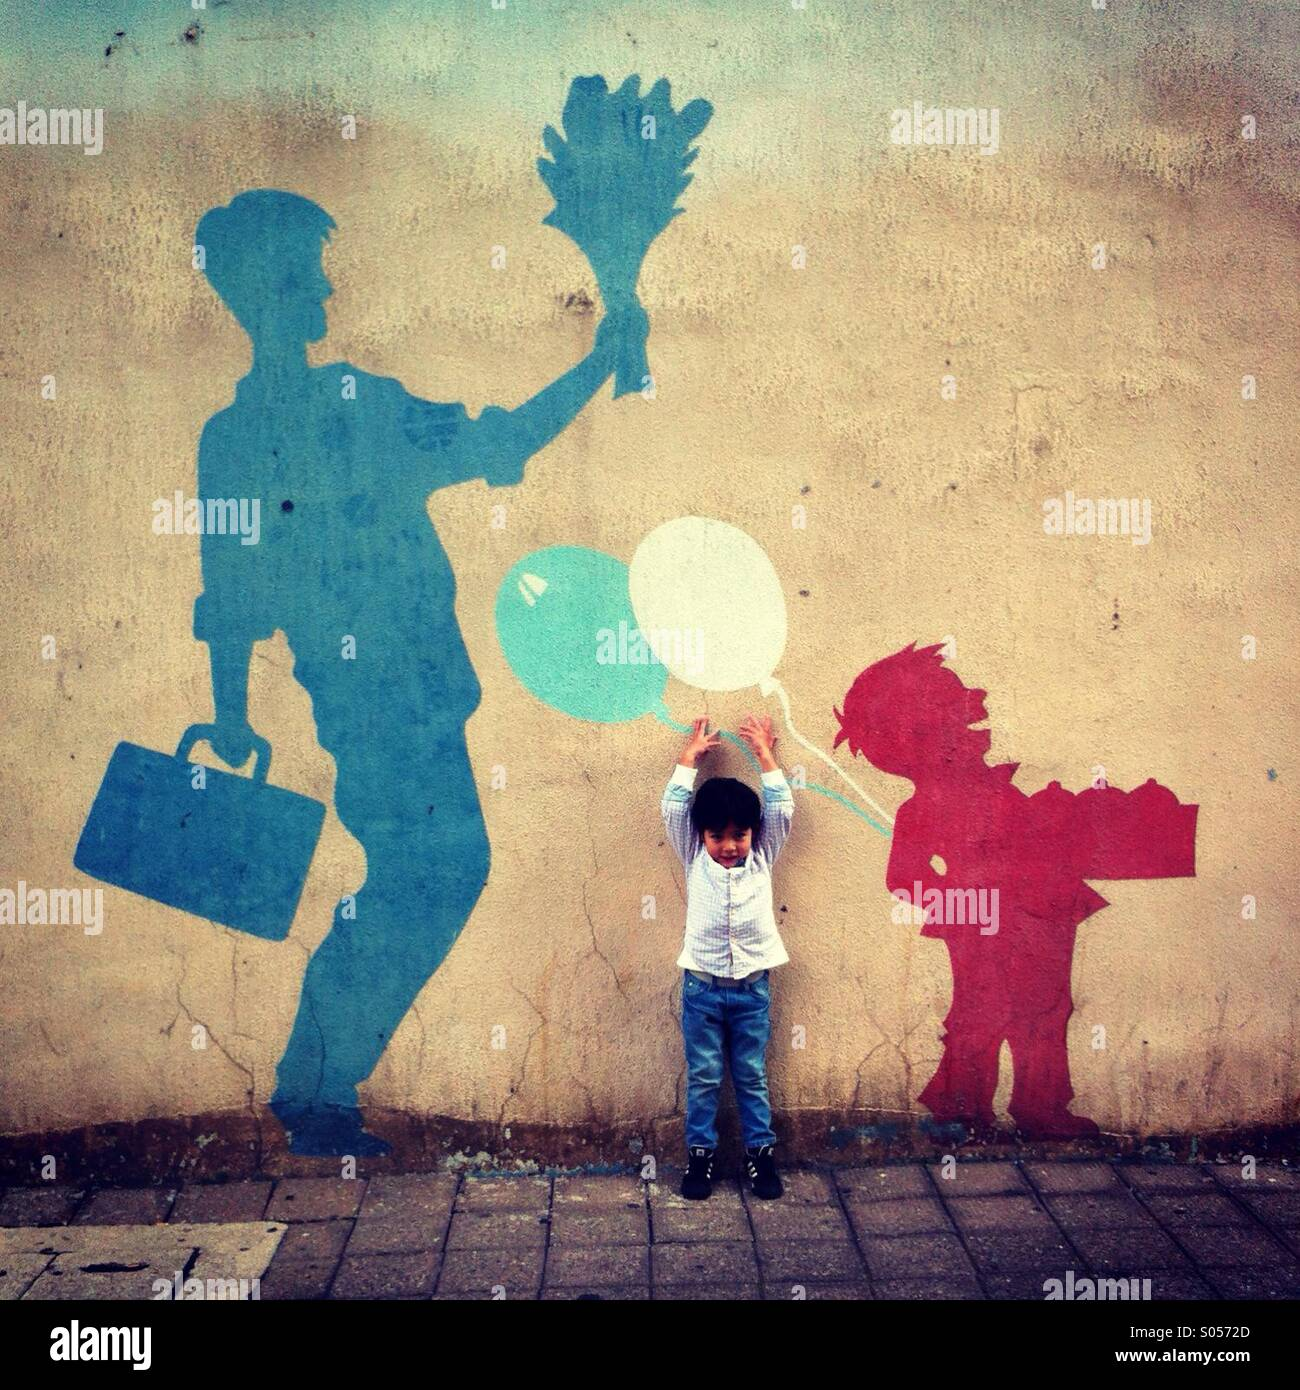 Little boy facing camera tries to reach for the balloon painted on the wall Stock Photo